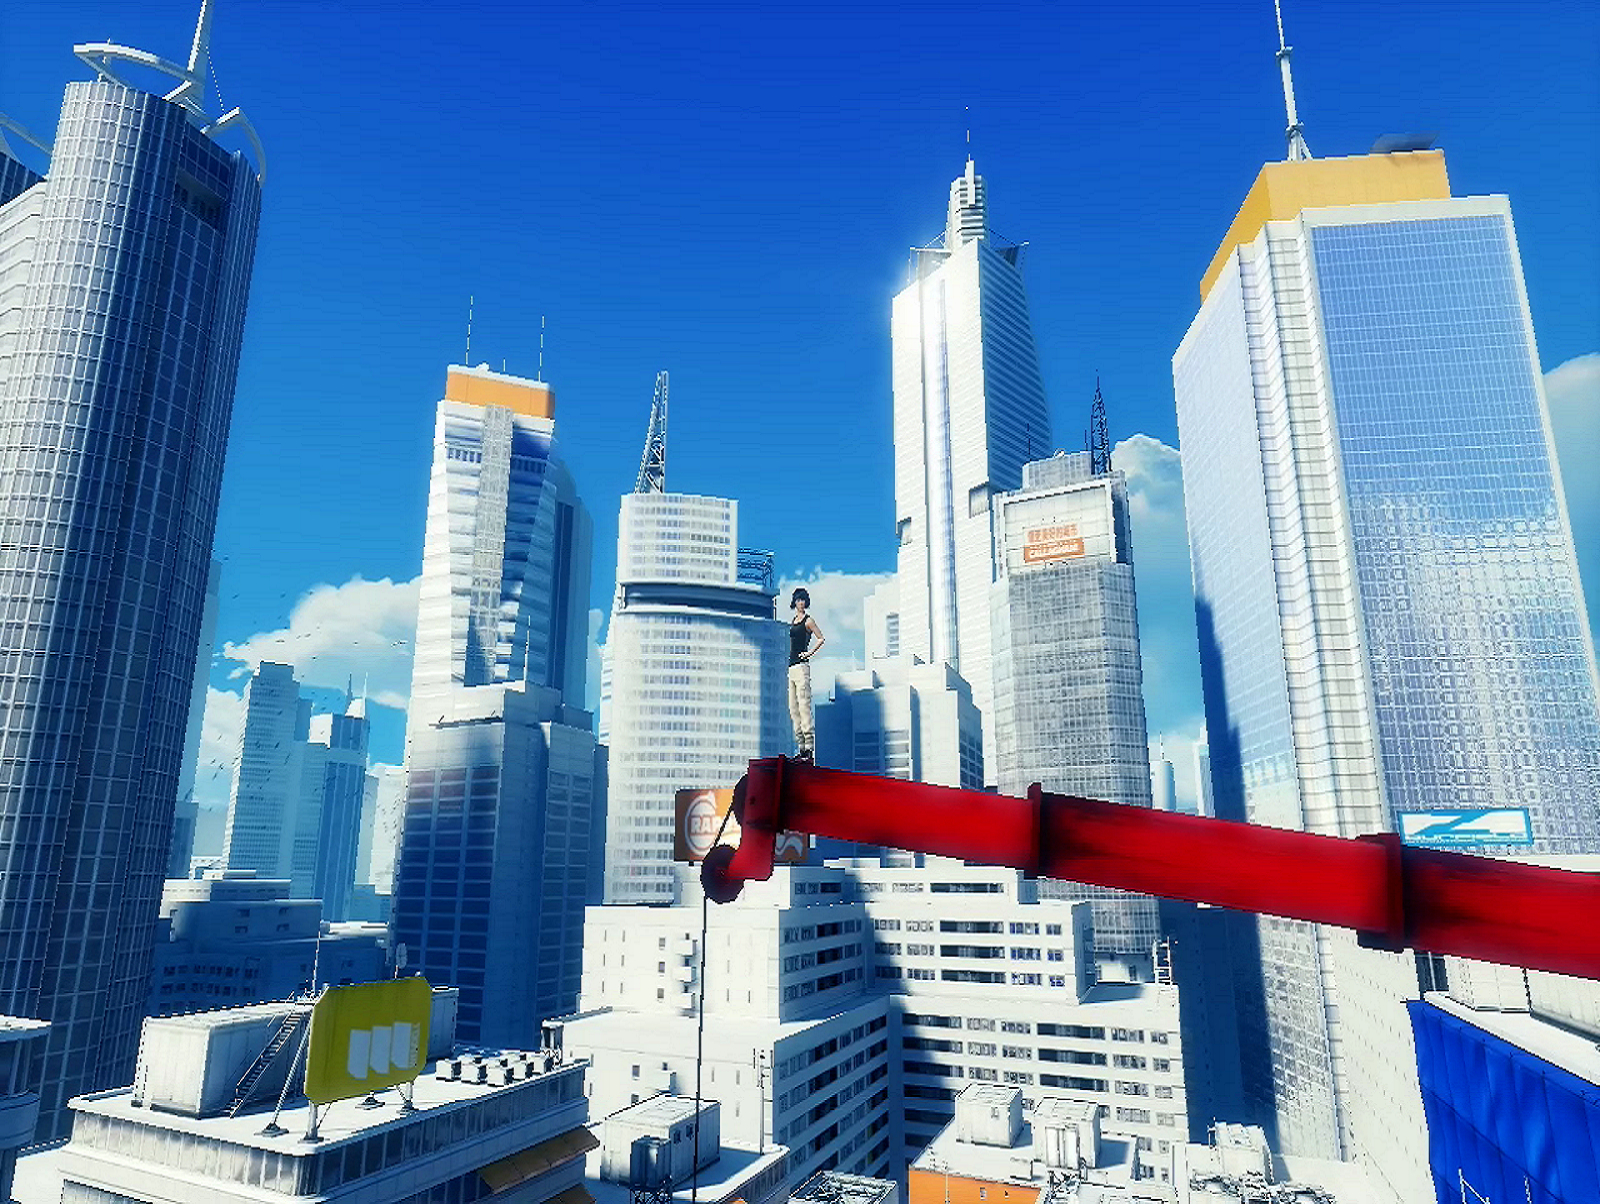 mirrors edge Games buildings HD Wallpaper